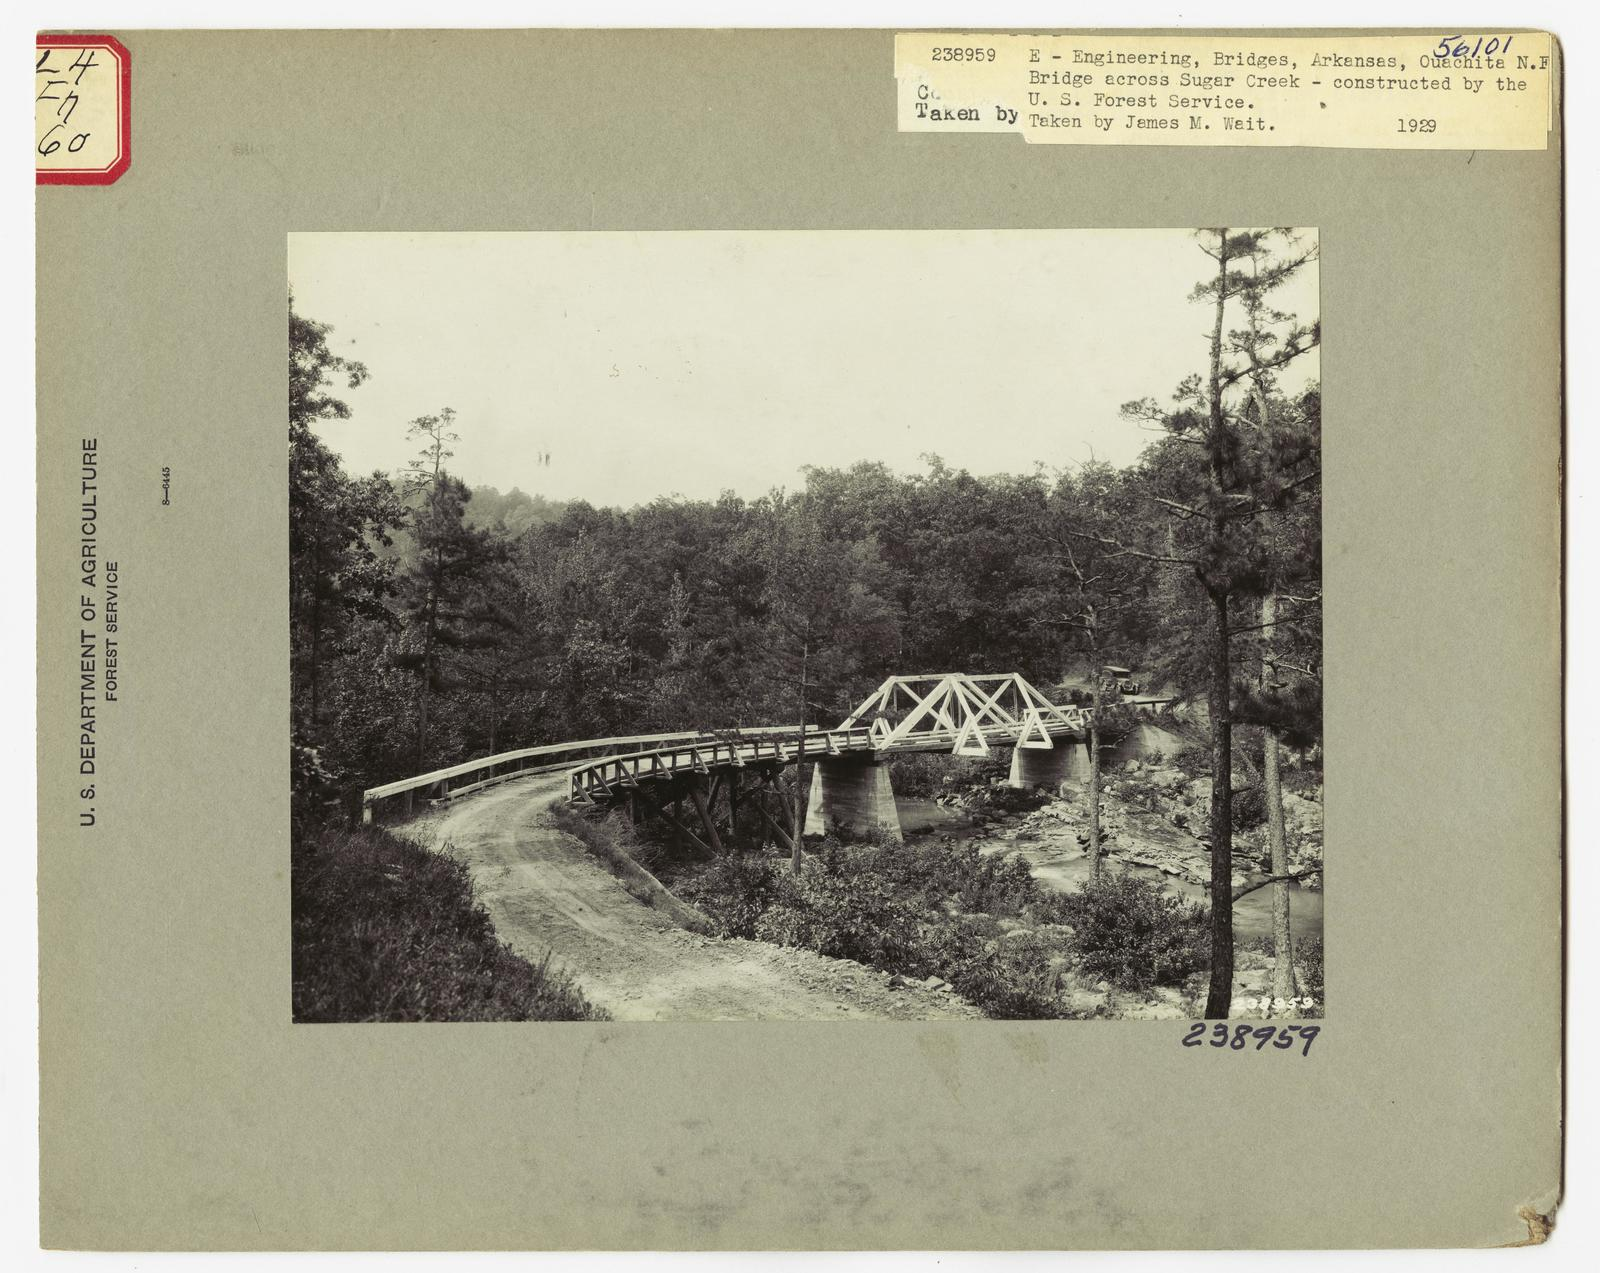 Bridges - Arkansas